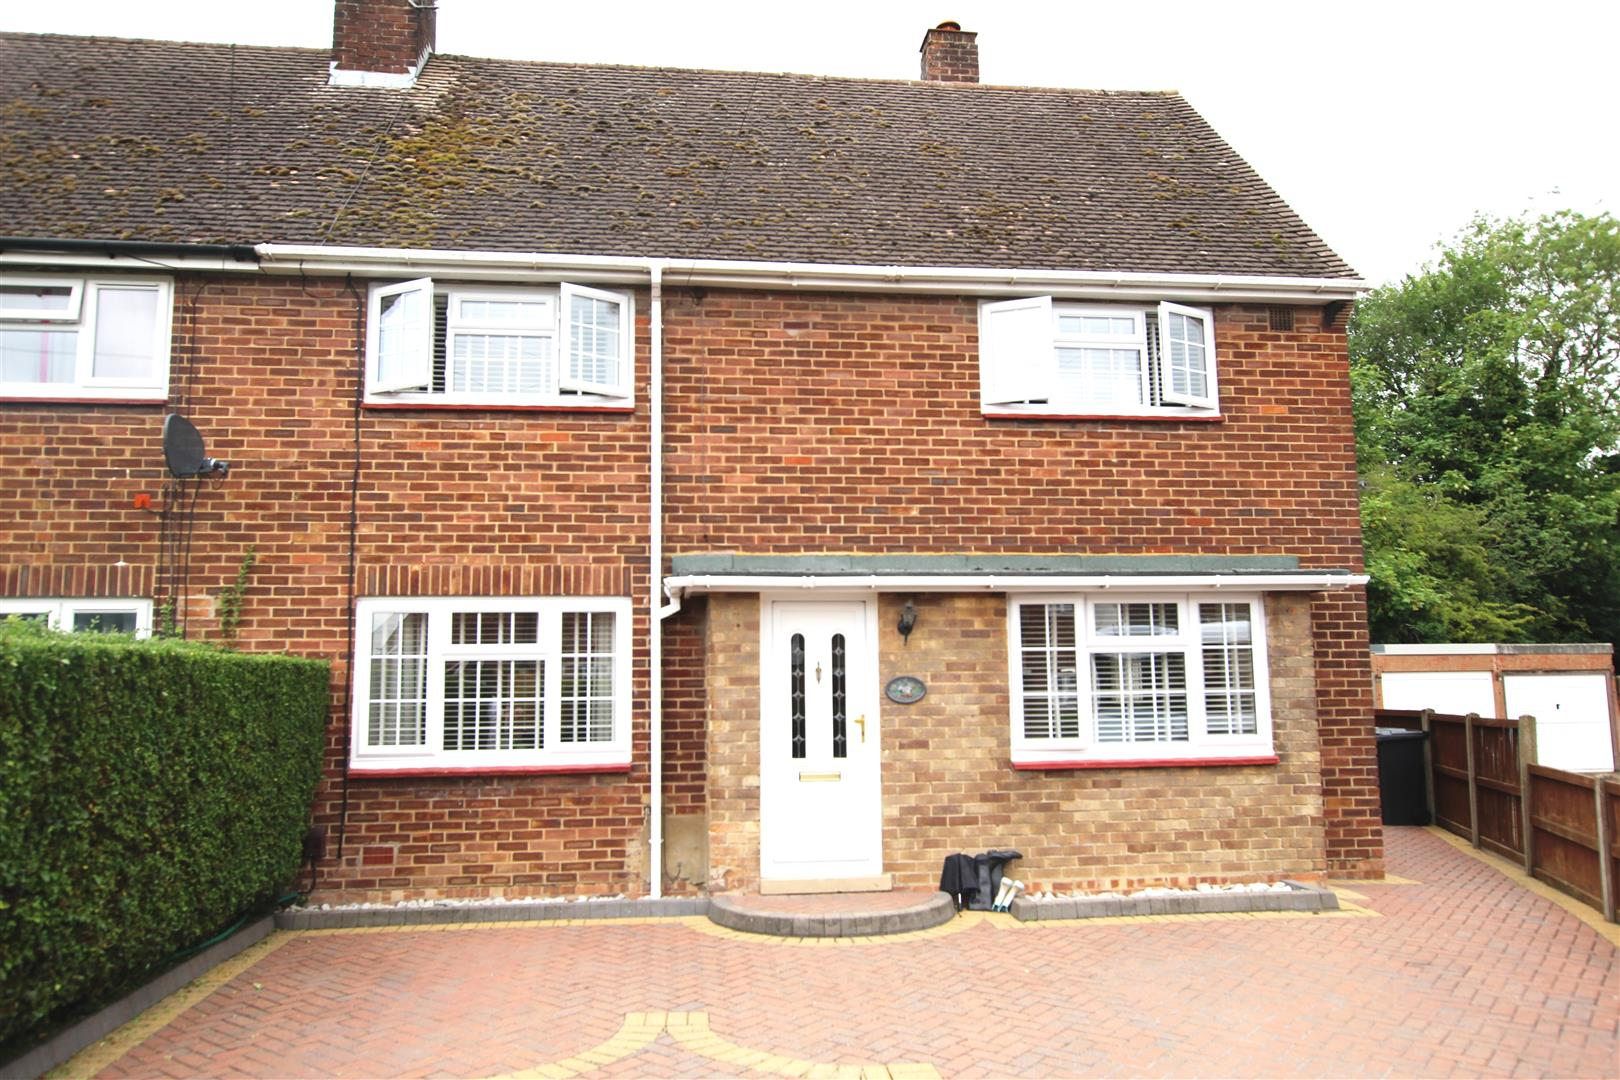 3 Bedrooms Semi Detached House for sale in Woodlands Avenue, Houghton Regis, Dunstable